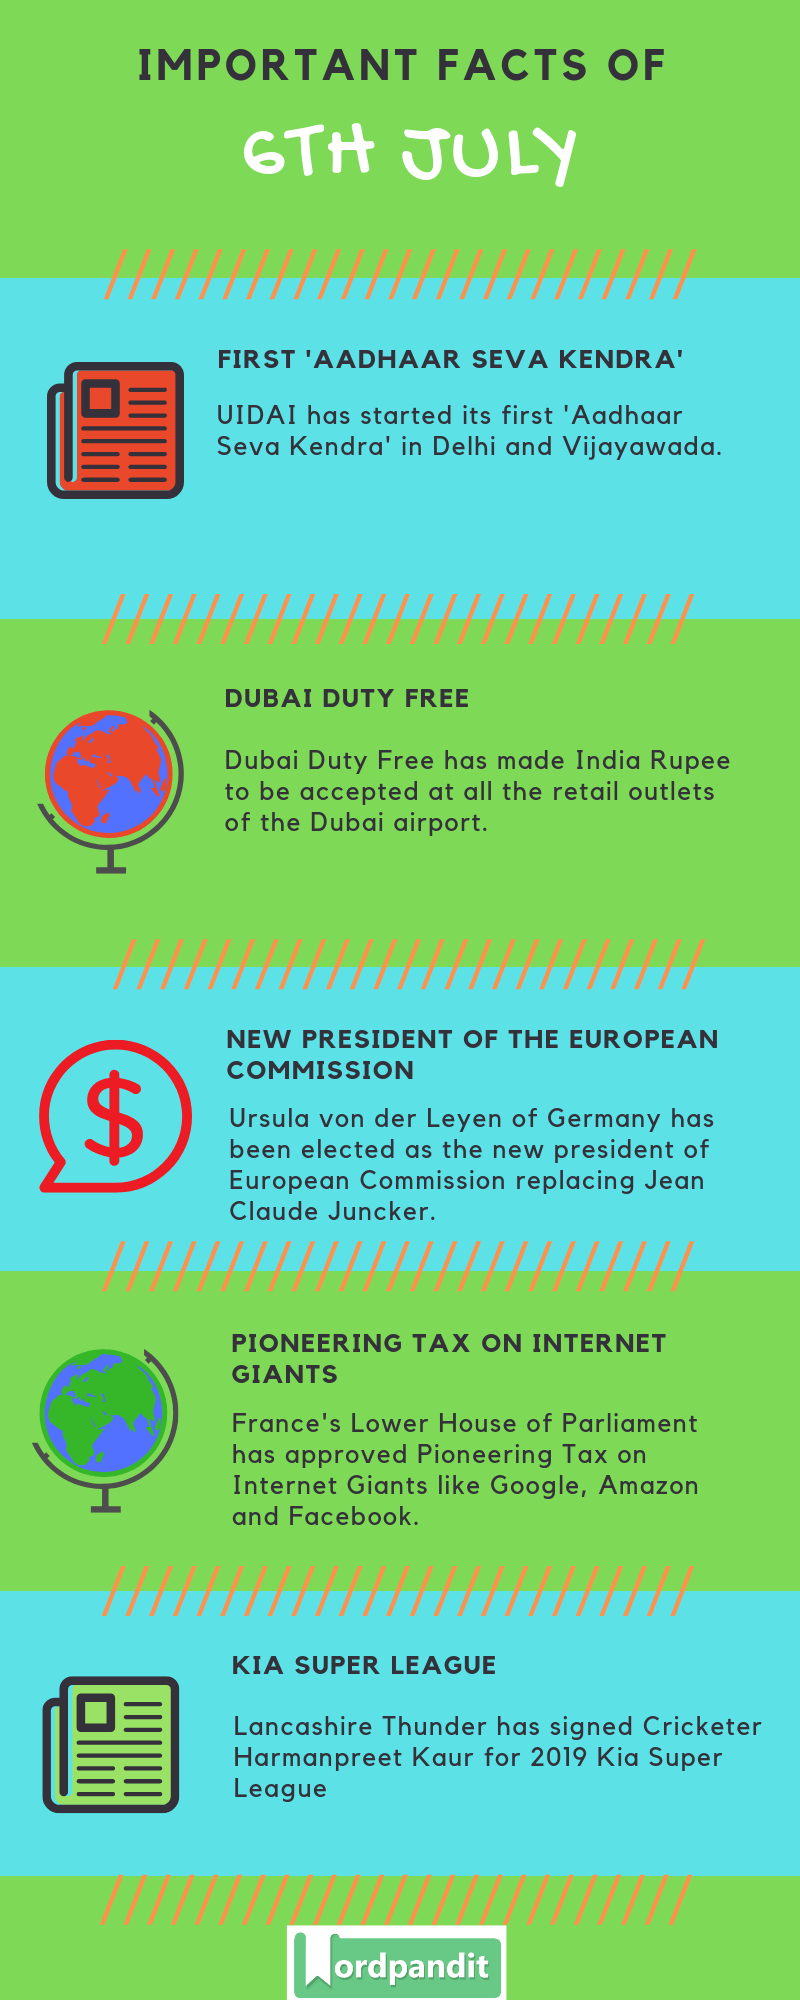 Daily Current Affairs 6 July 2019 Current Affairs Quiz 6 July 2019 Current Affairs Infographic